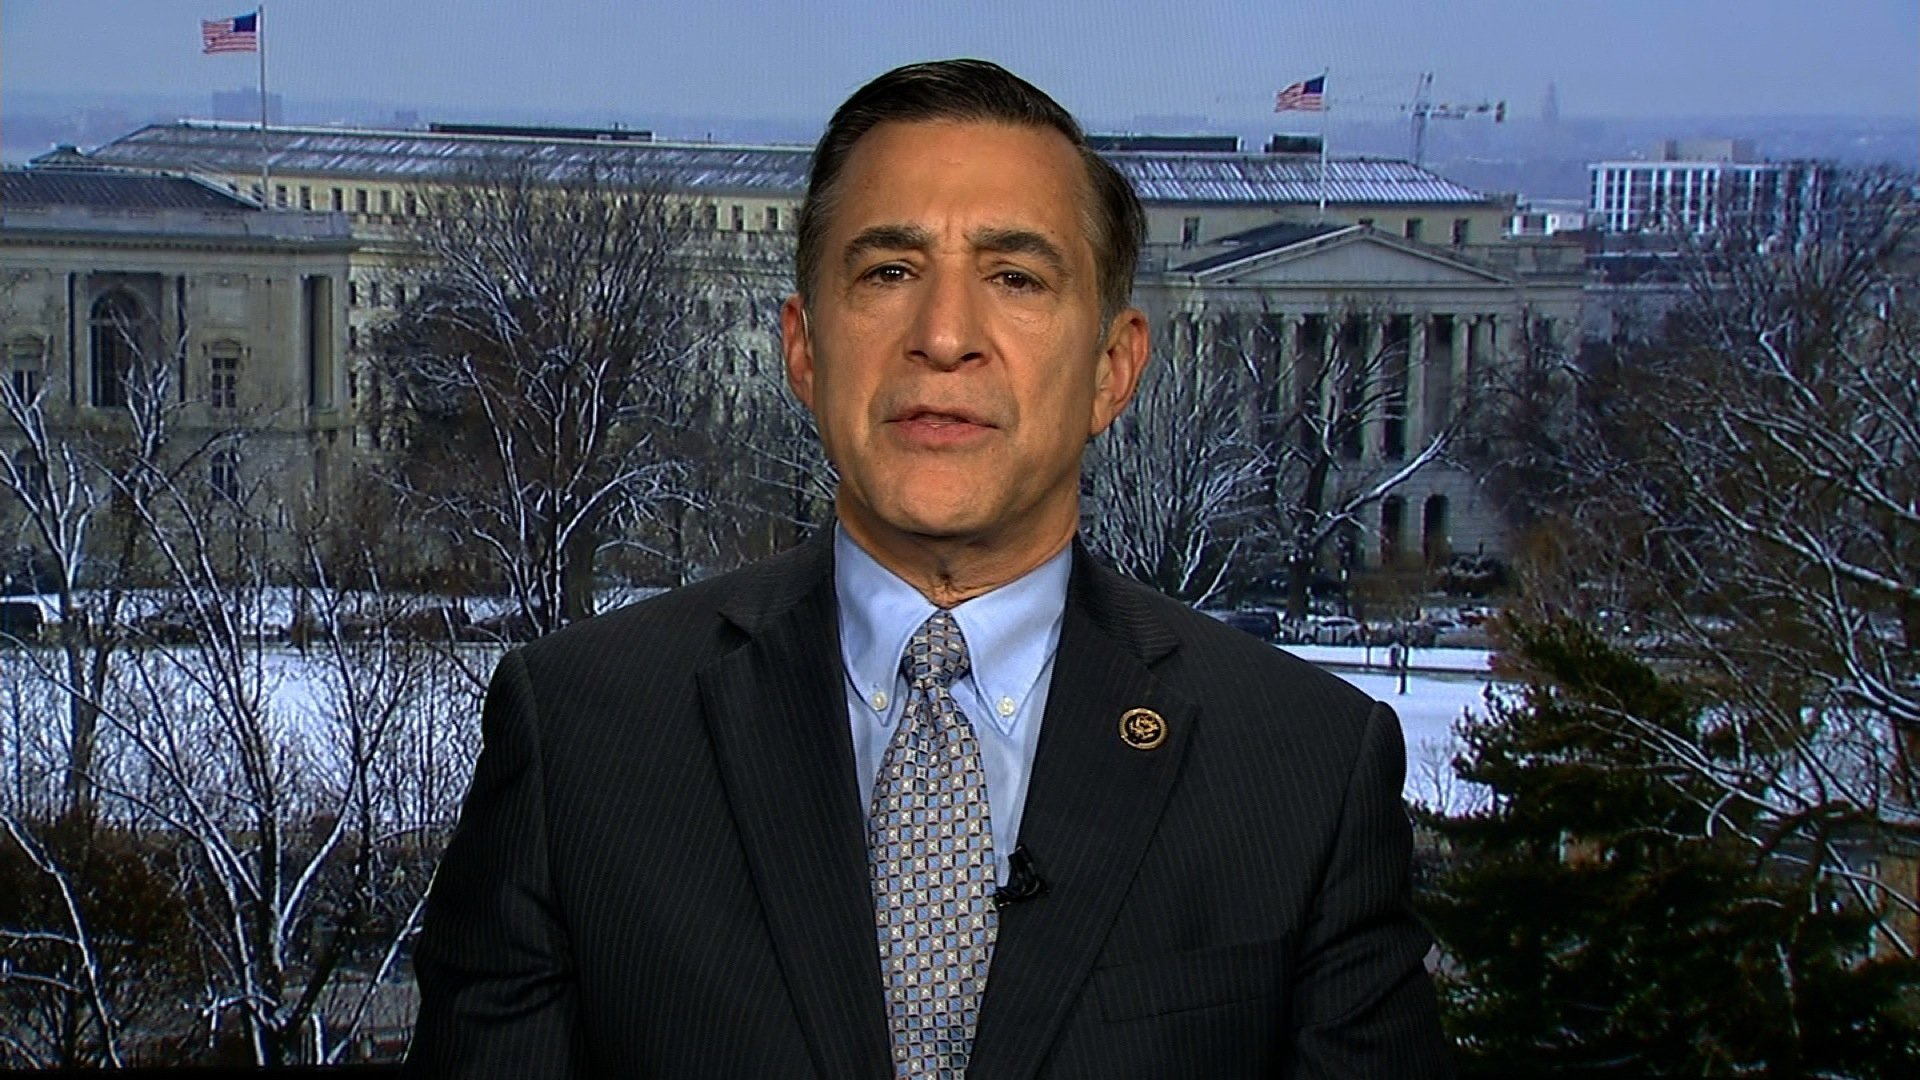 File- Ohio Rep. Michael Turner handed his fellow Republican colleague, California Rep. Darrell Issa, a letter on Capitol Hill last week asking for Issa to give a deposition in Turner's divorce case against his wife, Majida Turner.